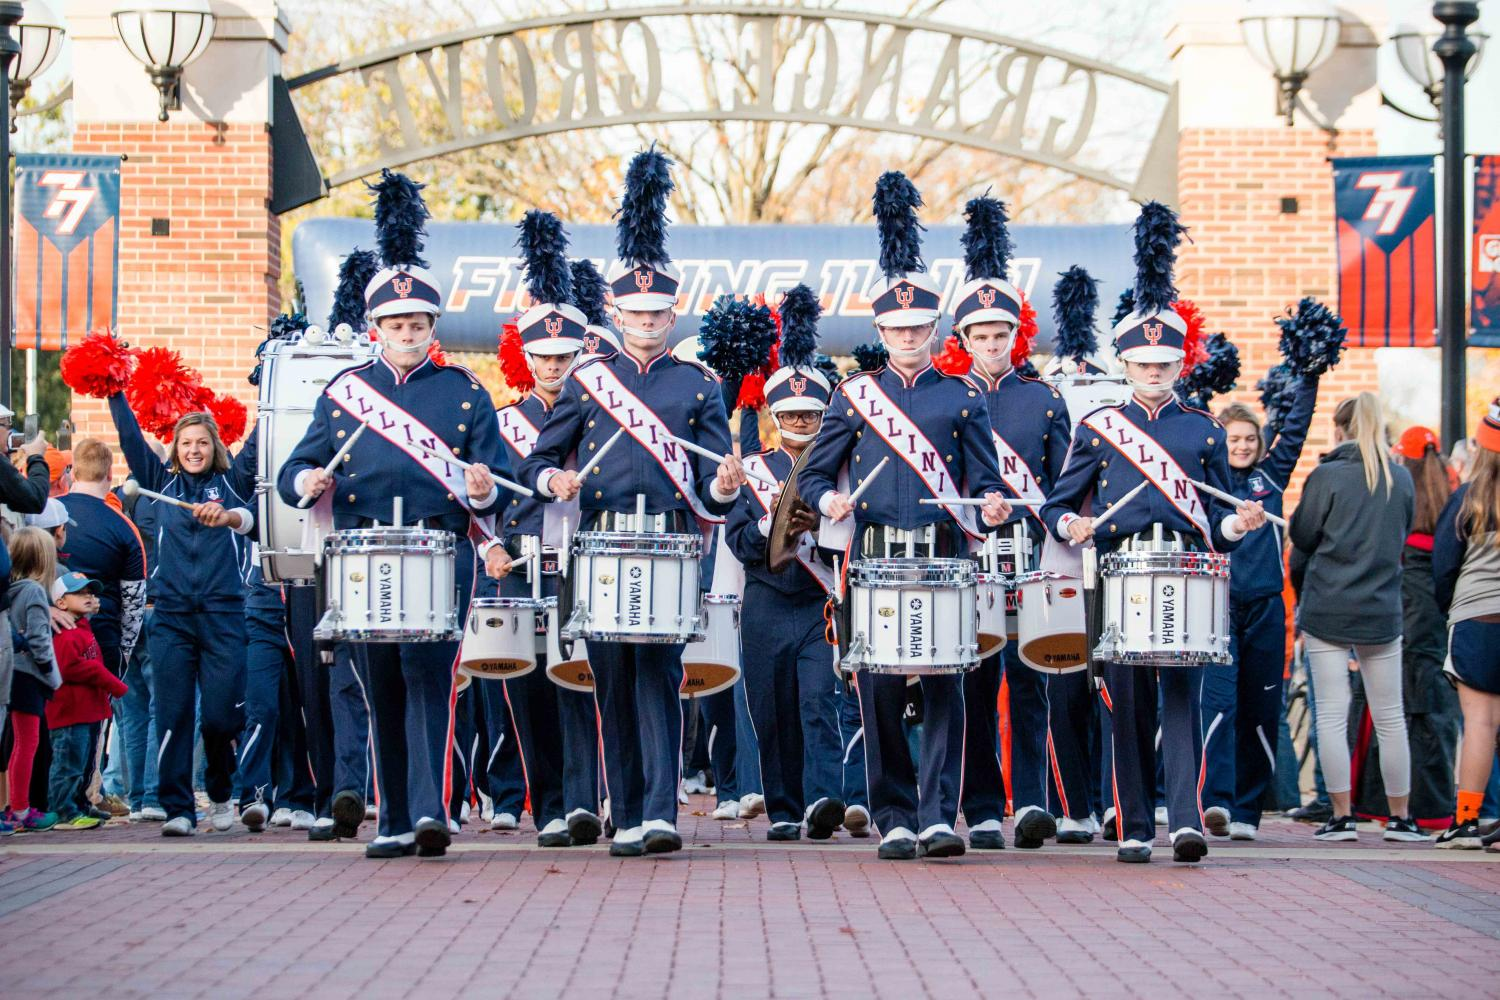 The+Marching+Illini+drumine+leads+the+team+into+grange+Grove+before+the+game+against+Michigan+State+at+Memorial+Stadium+on+Nov.+25%2C+2016%2F+Sports+Editor+Cole+Henke+disputes+the+reasoning+the+University+used+to+retire+the+%22War+Chant.%22